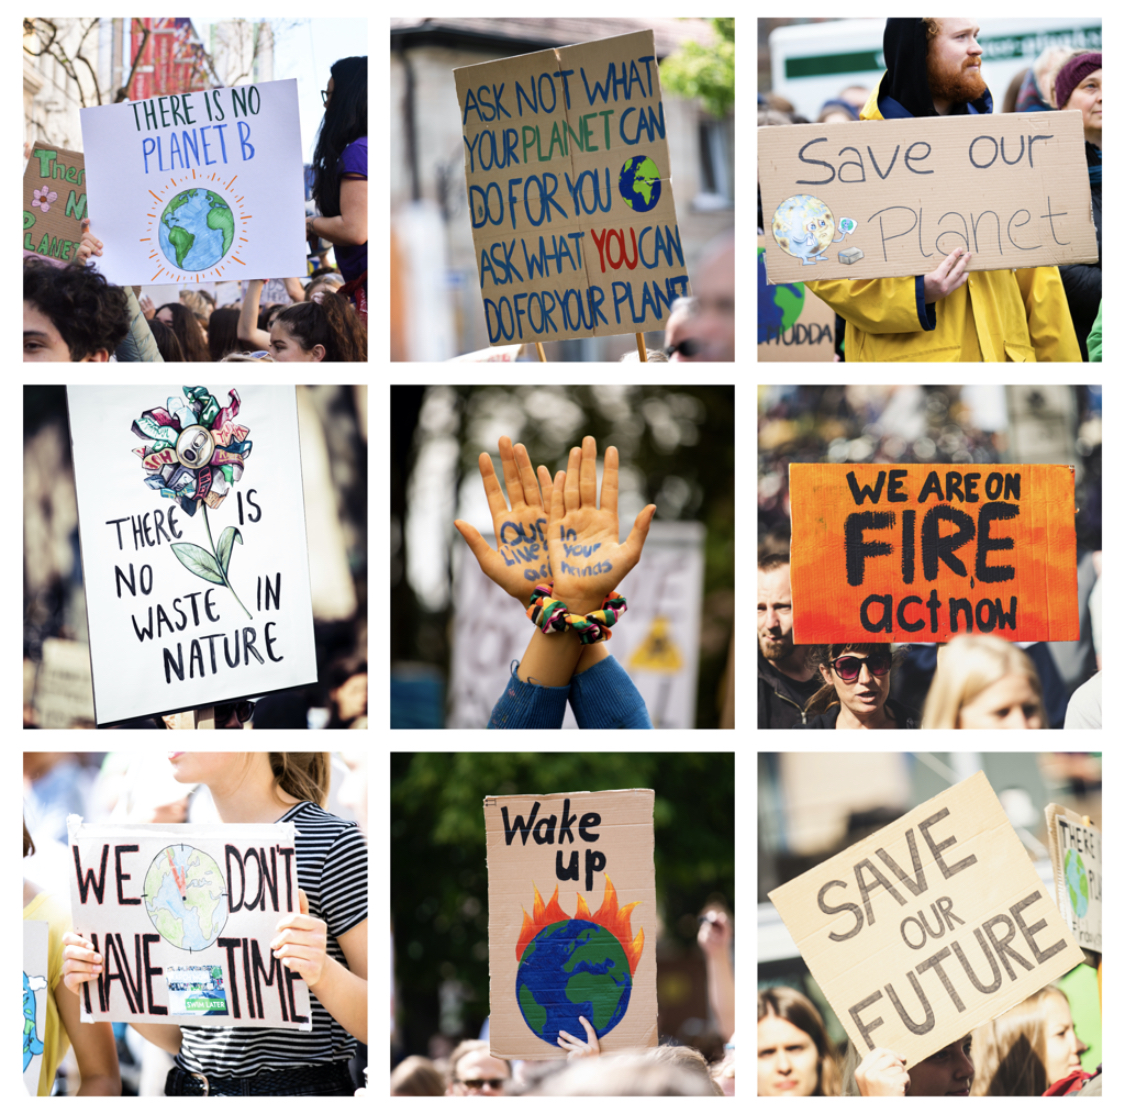 The Sierra Club pushes for societal changes and voices the current and increasing impacts of climate change.